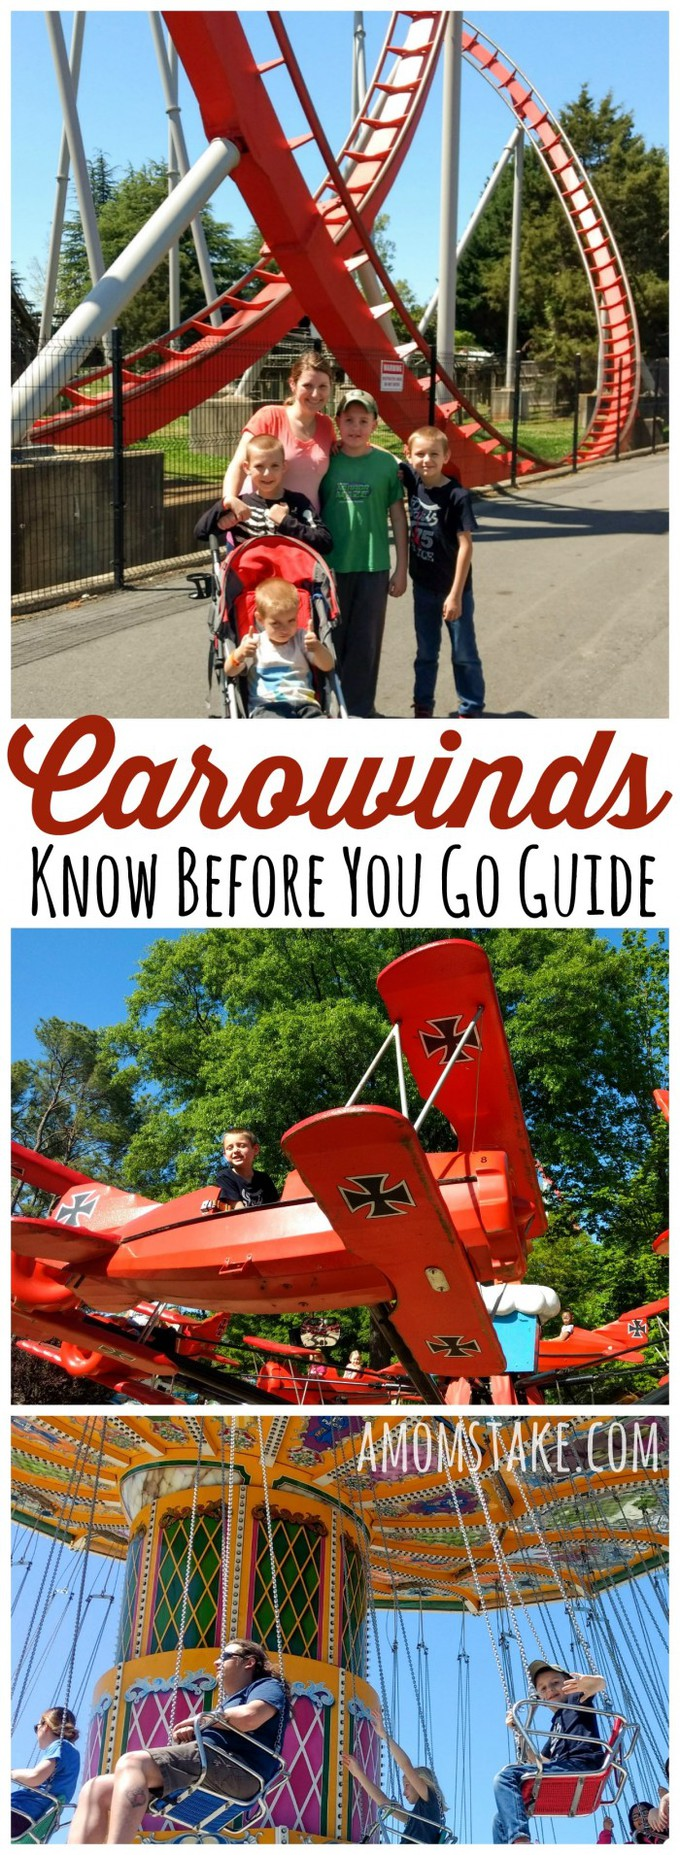 5 things to know before you go to carowinds - tips and tricks to make the most out of your family trip to Carowinds theme park in North Carolina / South Carolina. Perfect destination for roller coaster lovers! #travel #familytravel #rollercoasters #themepark #vacation #staycation #northcarolina #southcarolina #carowinds